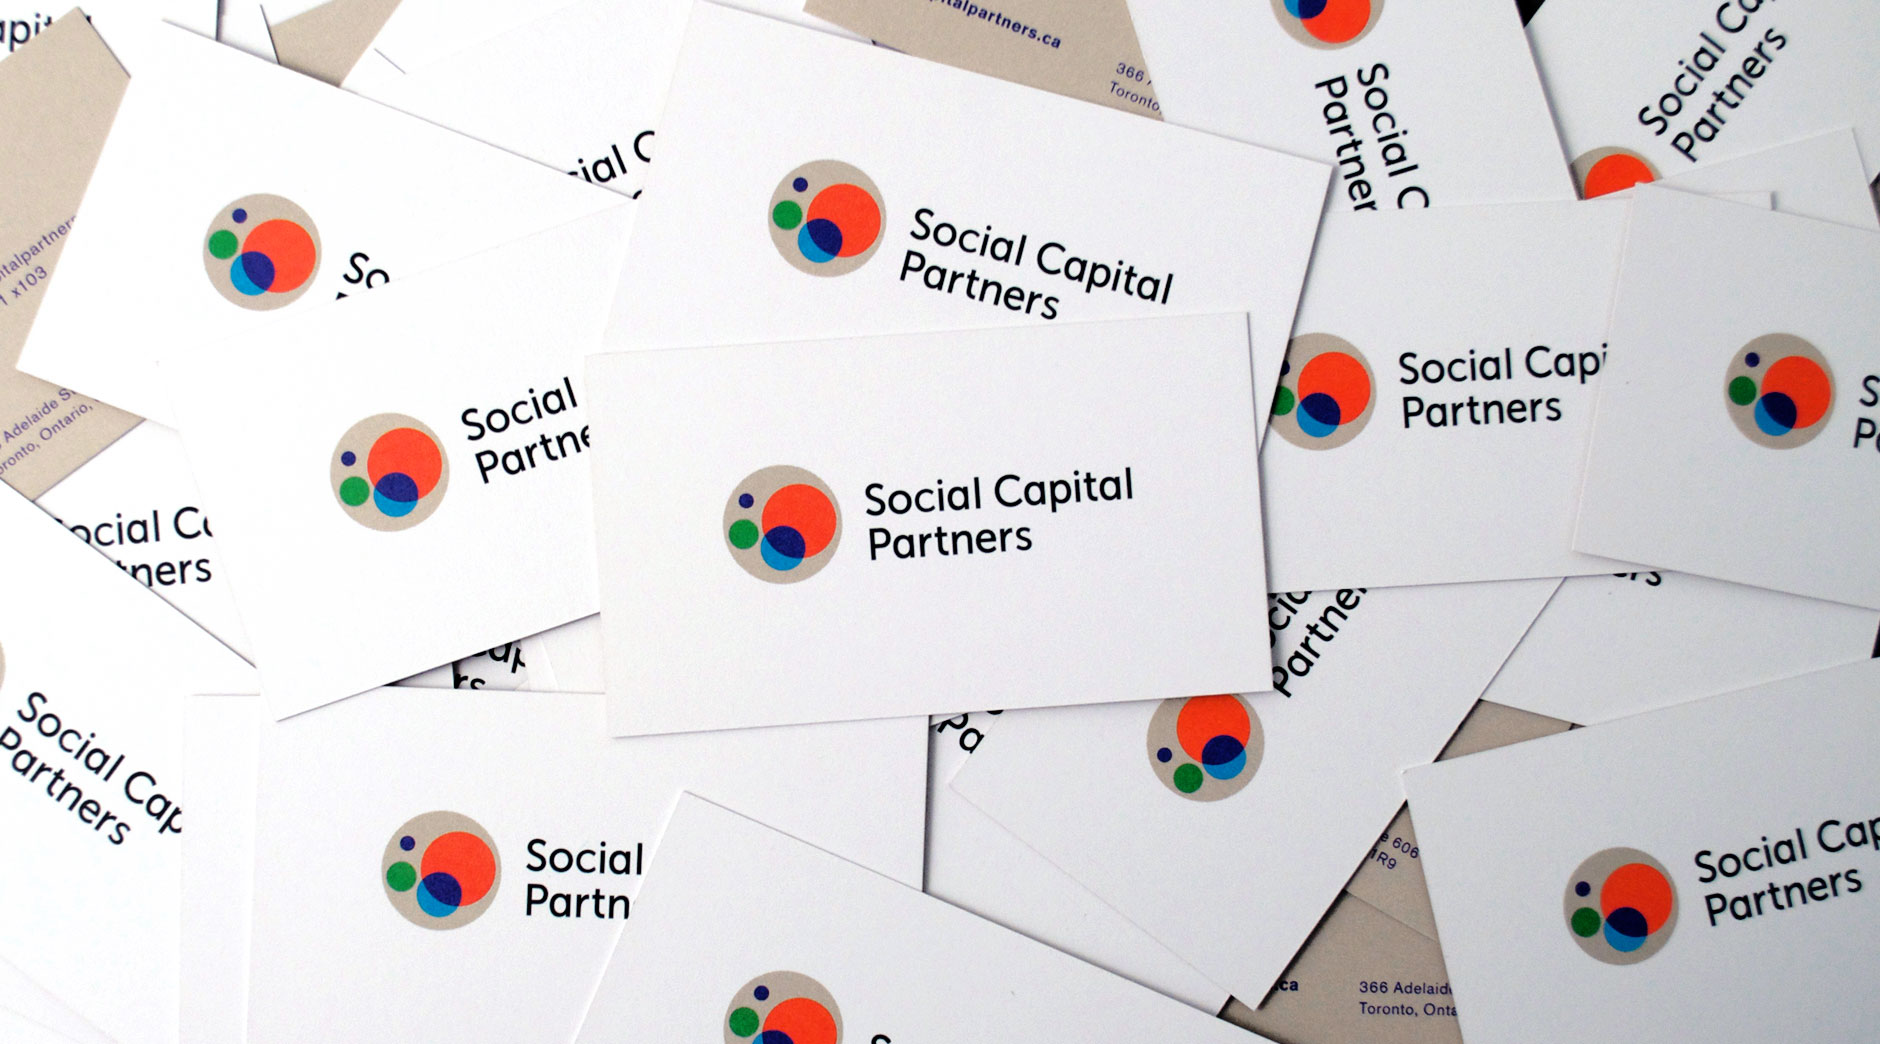 Social Capital Partners business cards